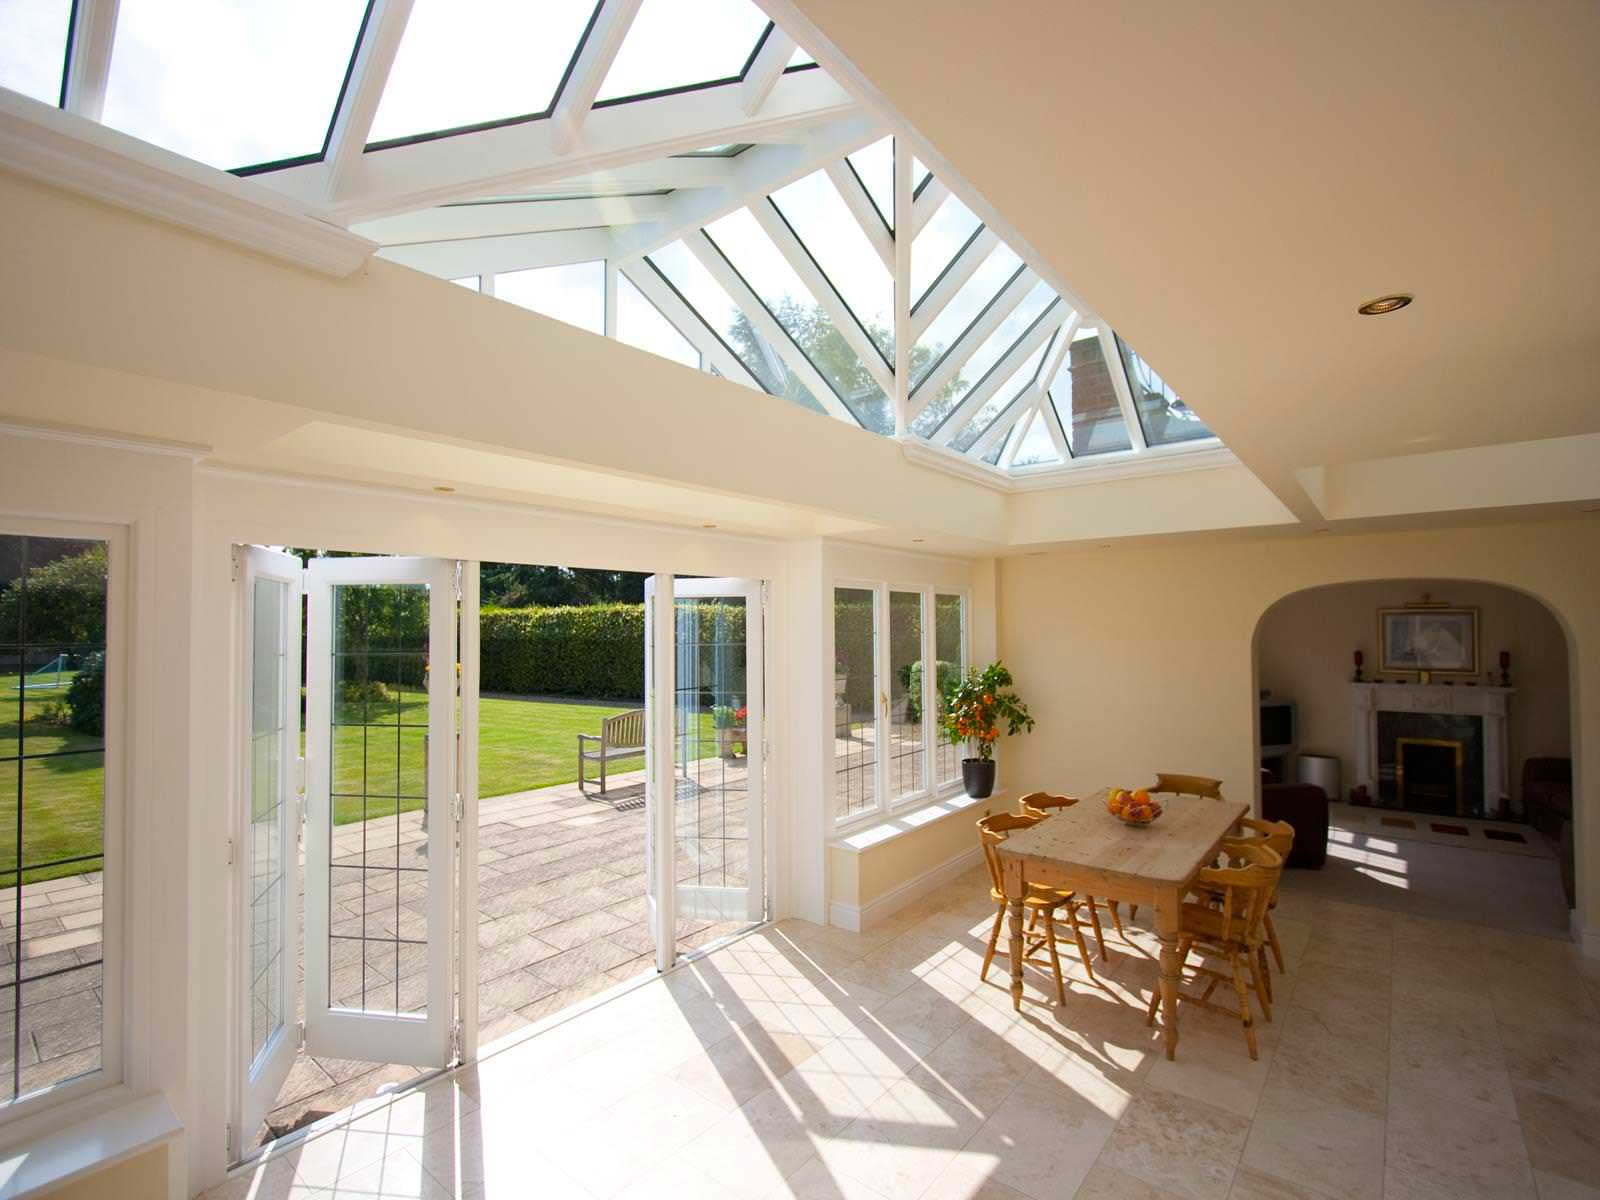 How much do bifold patio doors cost? & Bi-Fold Doors | Hardwood \u0026 Aluminium Concertina Doors Pezcame.Com